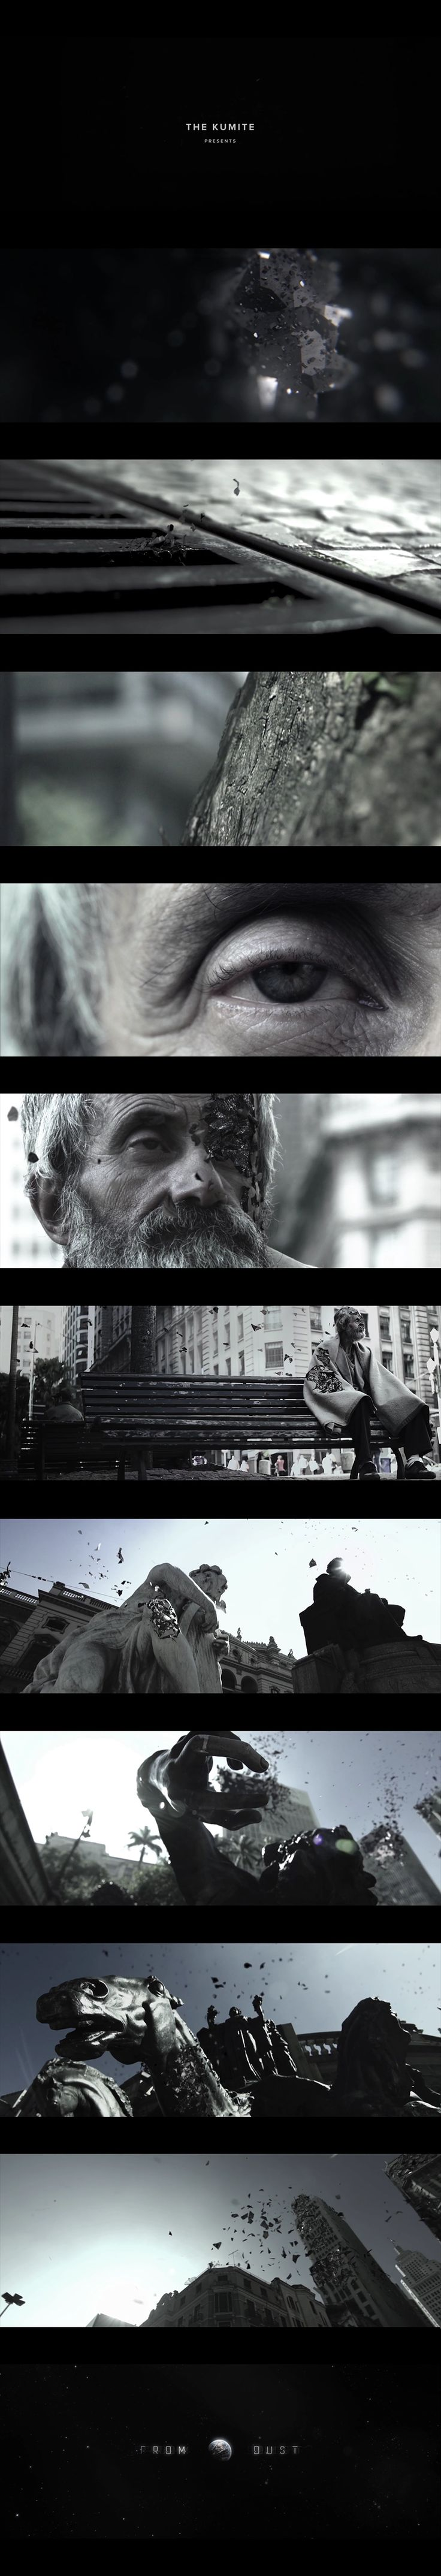 """A short film from Brazilian Director and CG Artist André Holzmeister ~ FROM DUST ... """"brings us to a reflexion about our origin and destiny as a civilization. It's an allegory about what in fact unite humanity to everything that su..."""